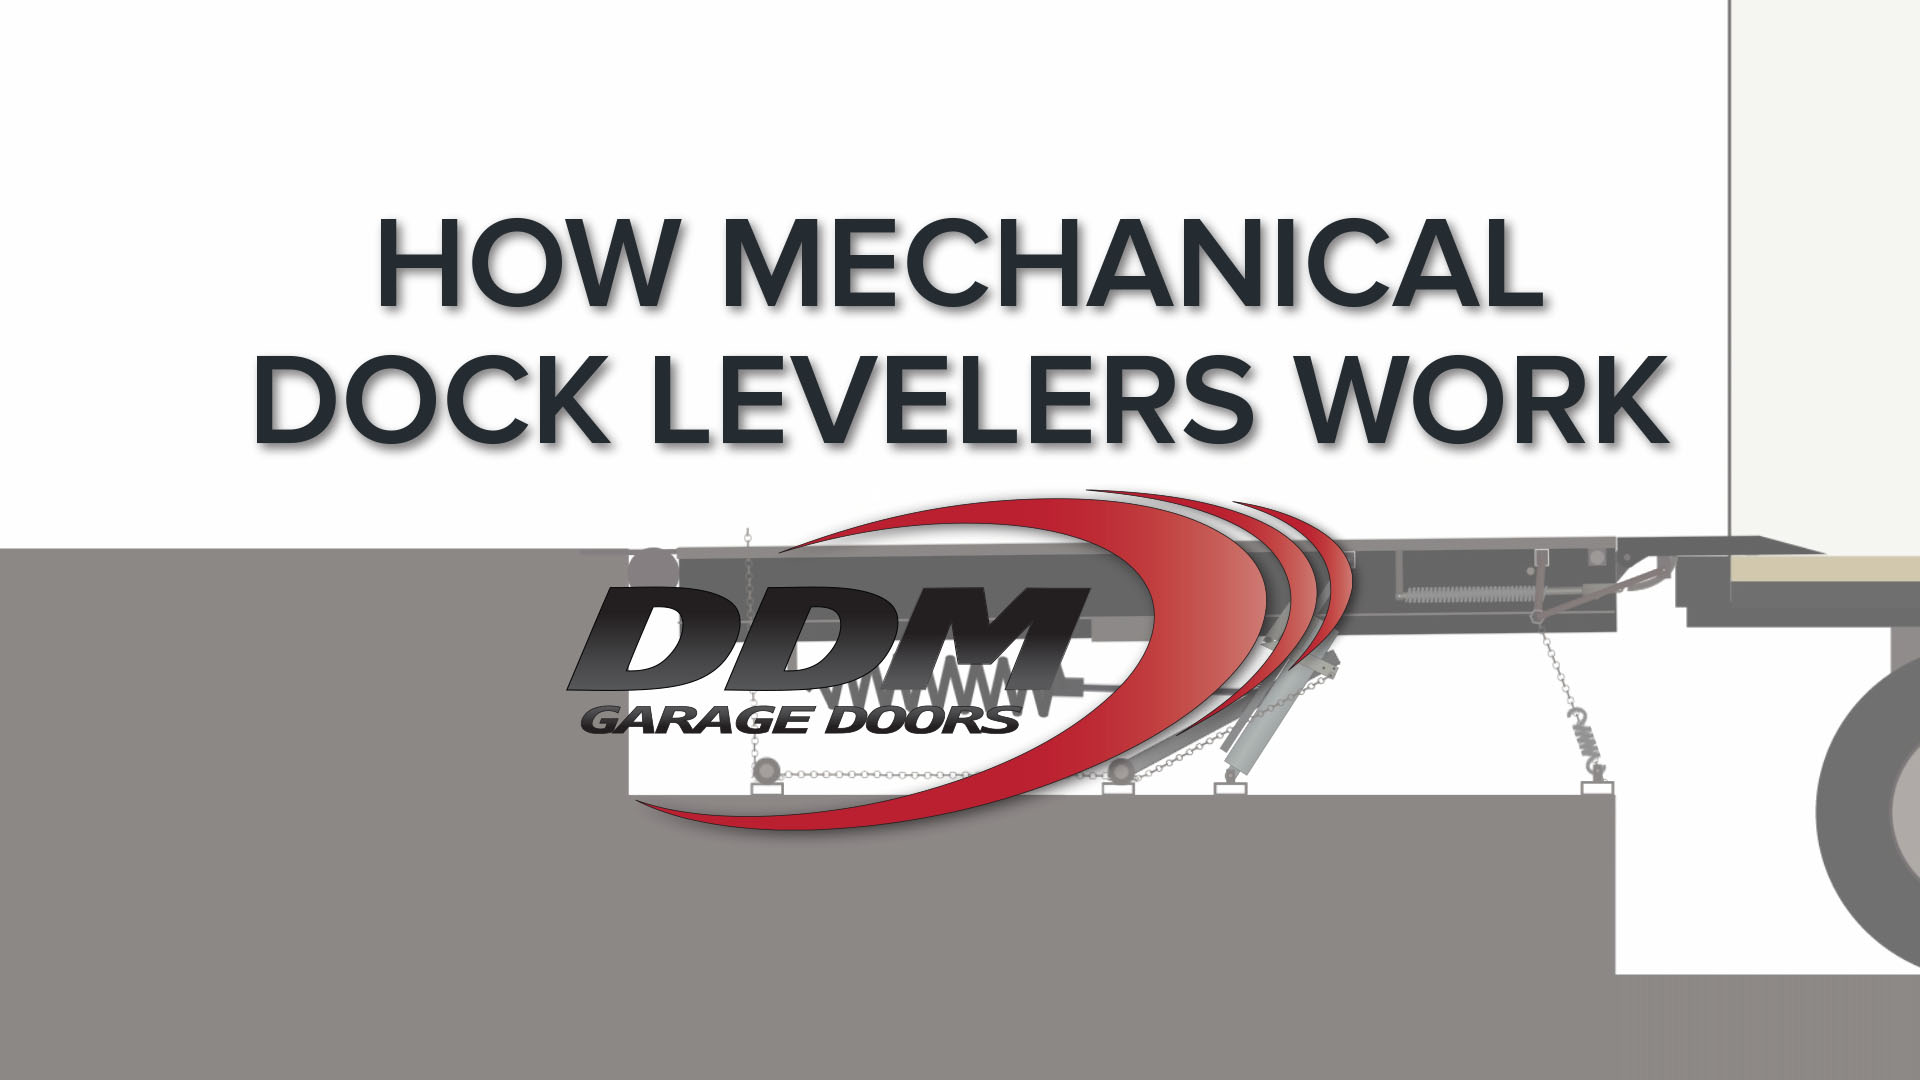 How Mechanical Dock Levelers Work